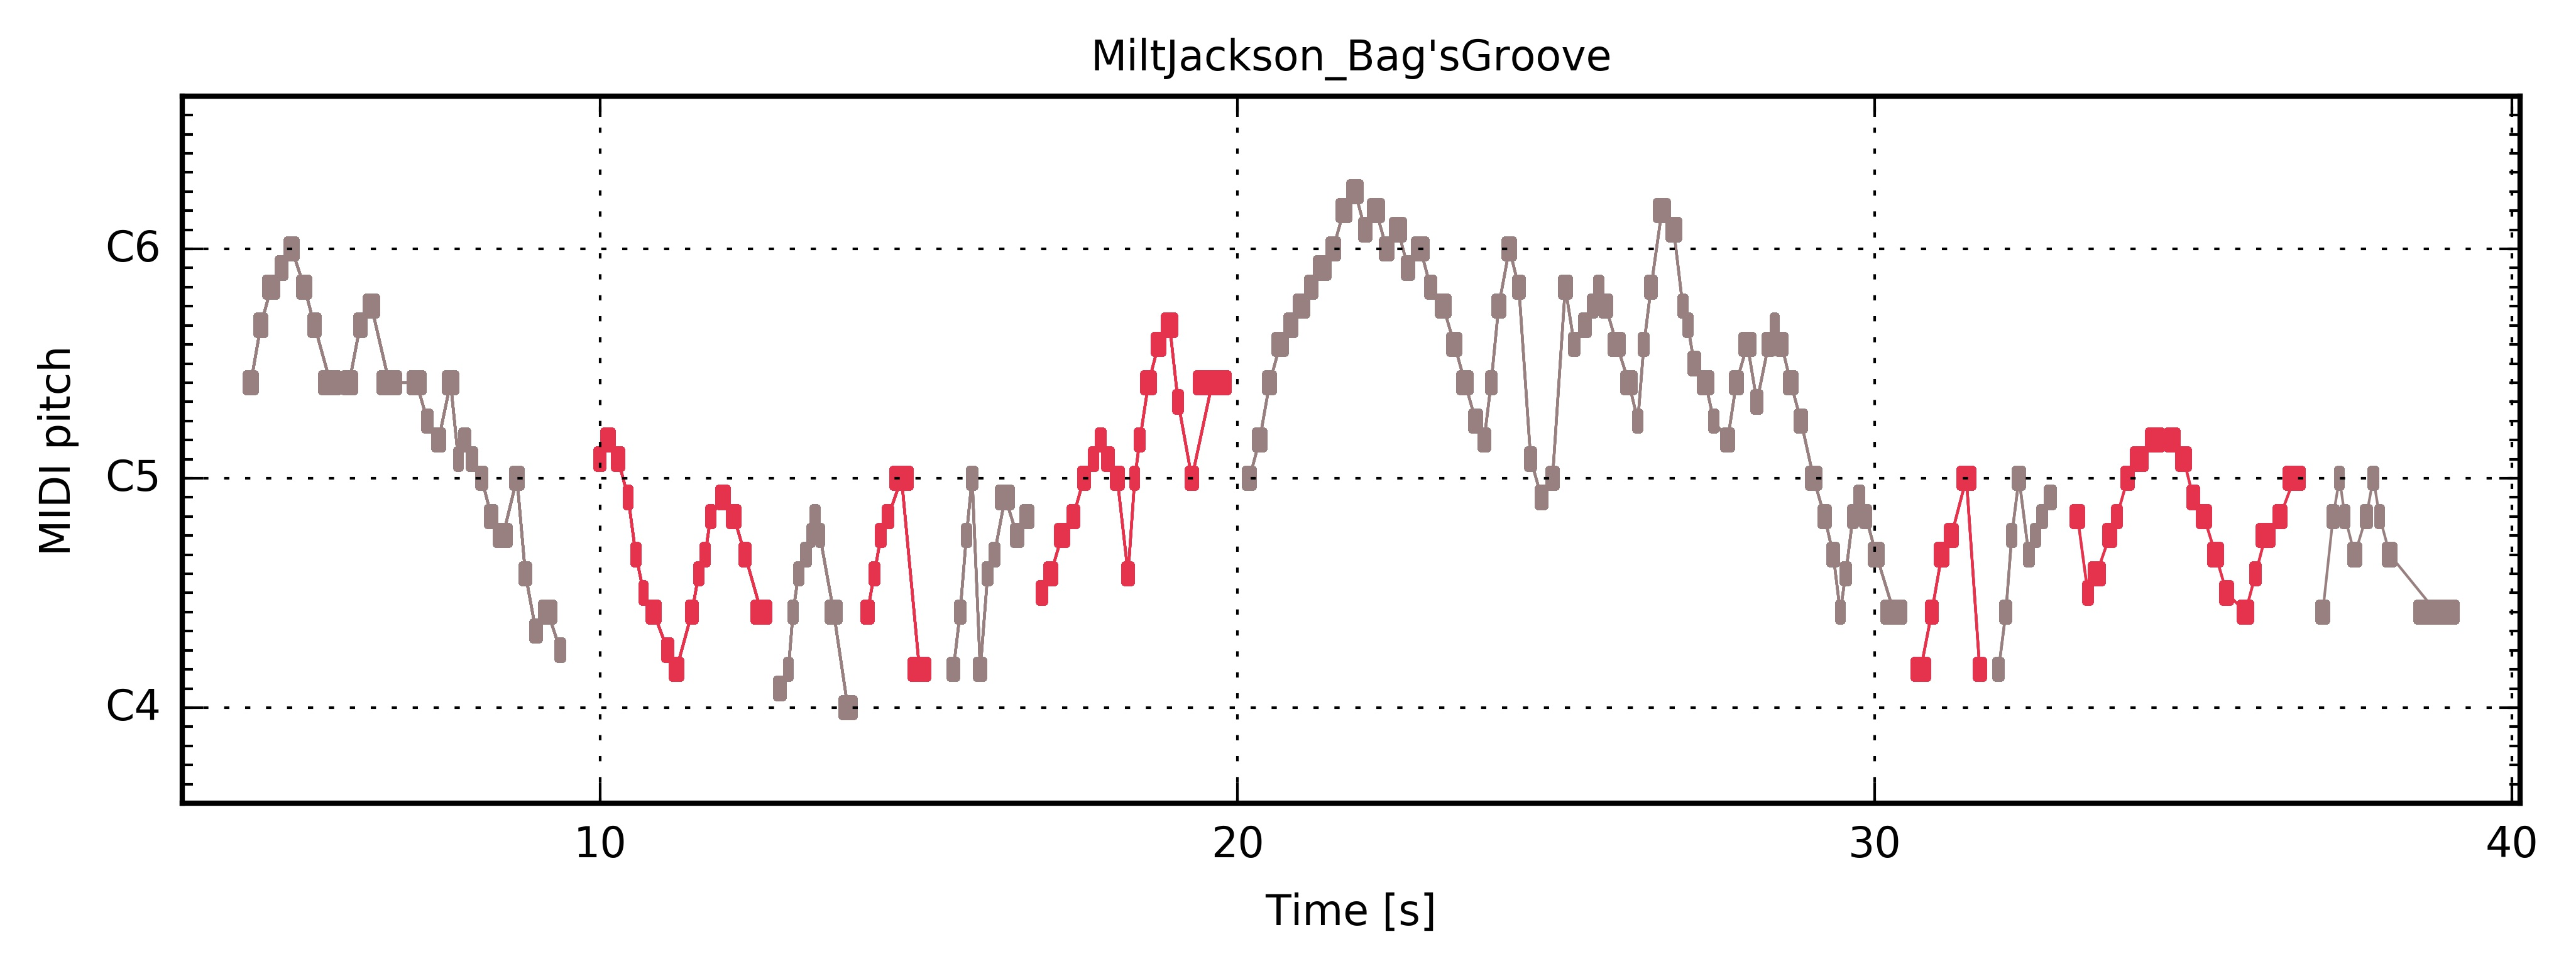 "Milt Jackson ""Bag's Groove"" — The Jazzomat Research Project"